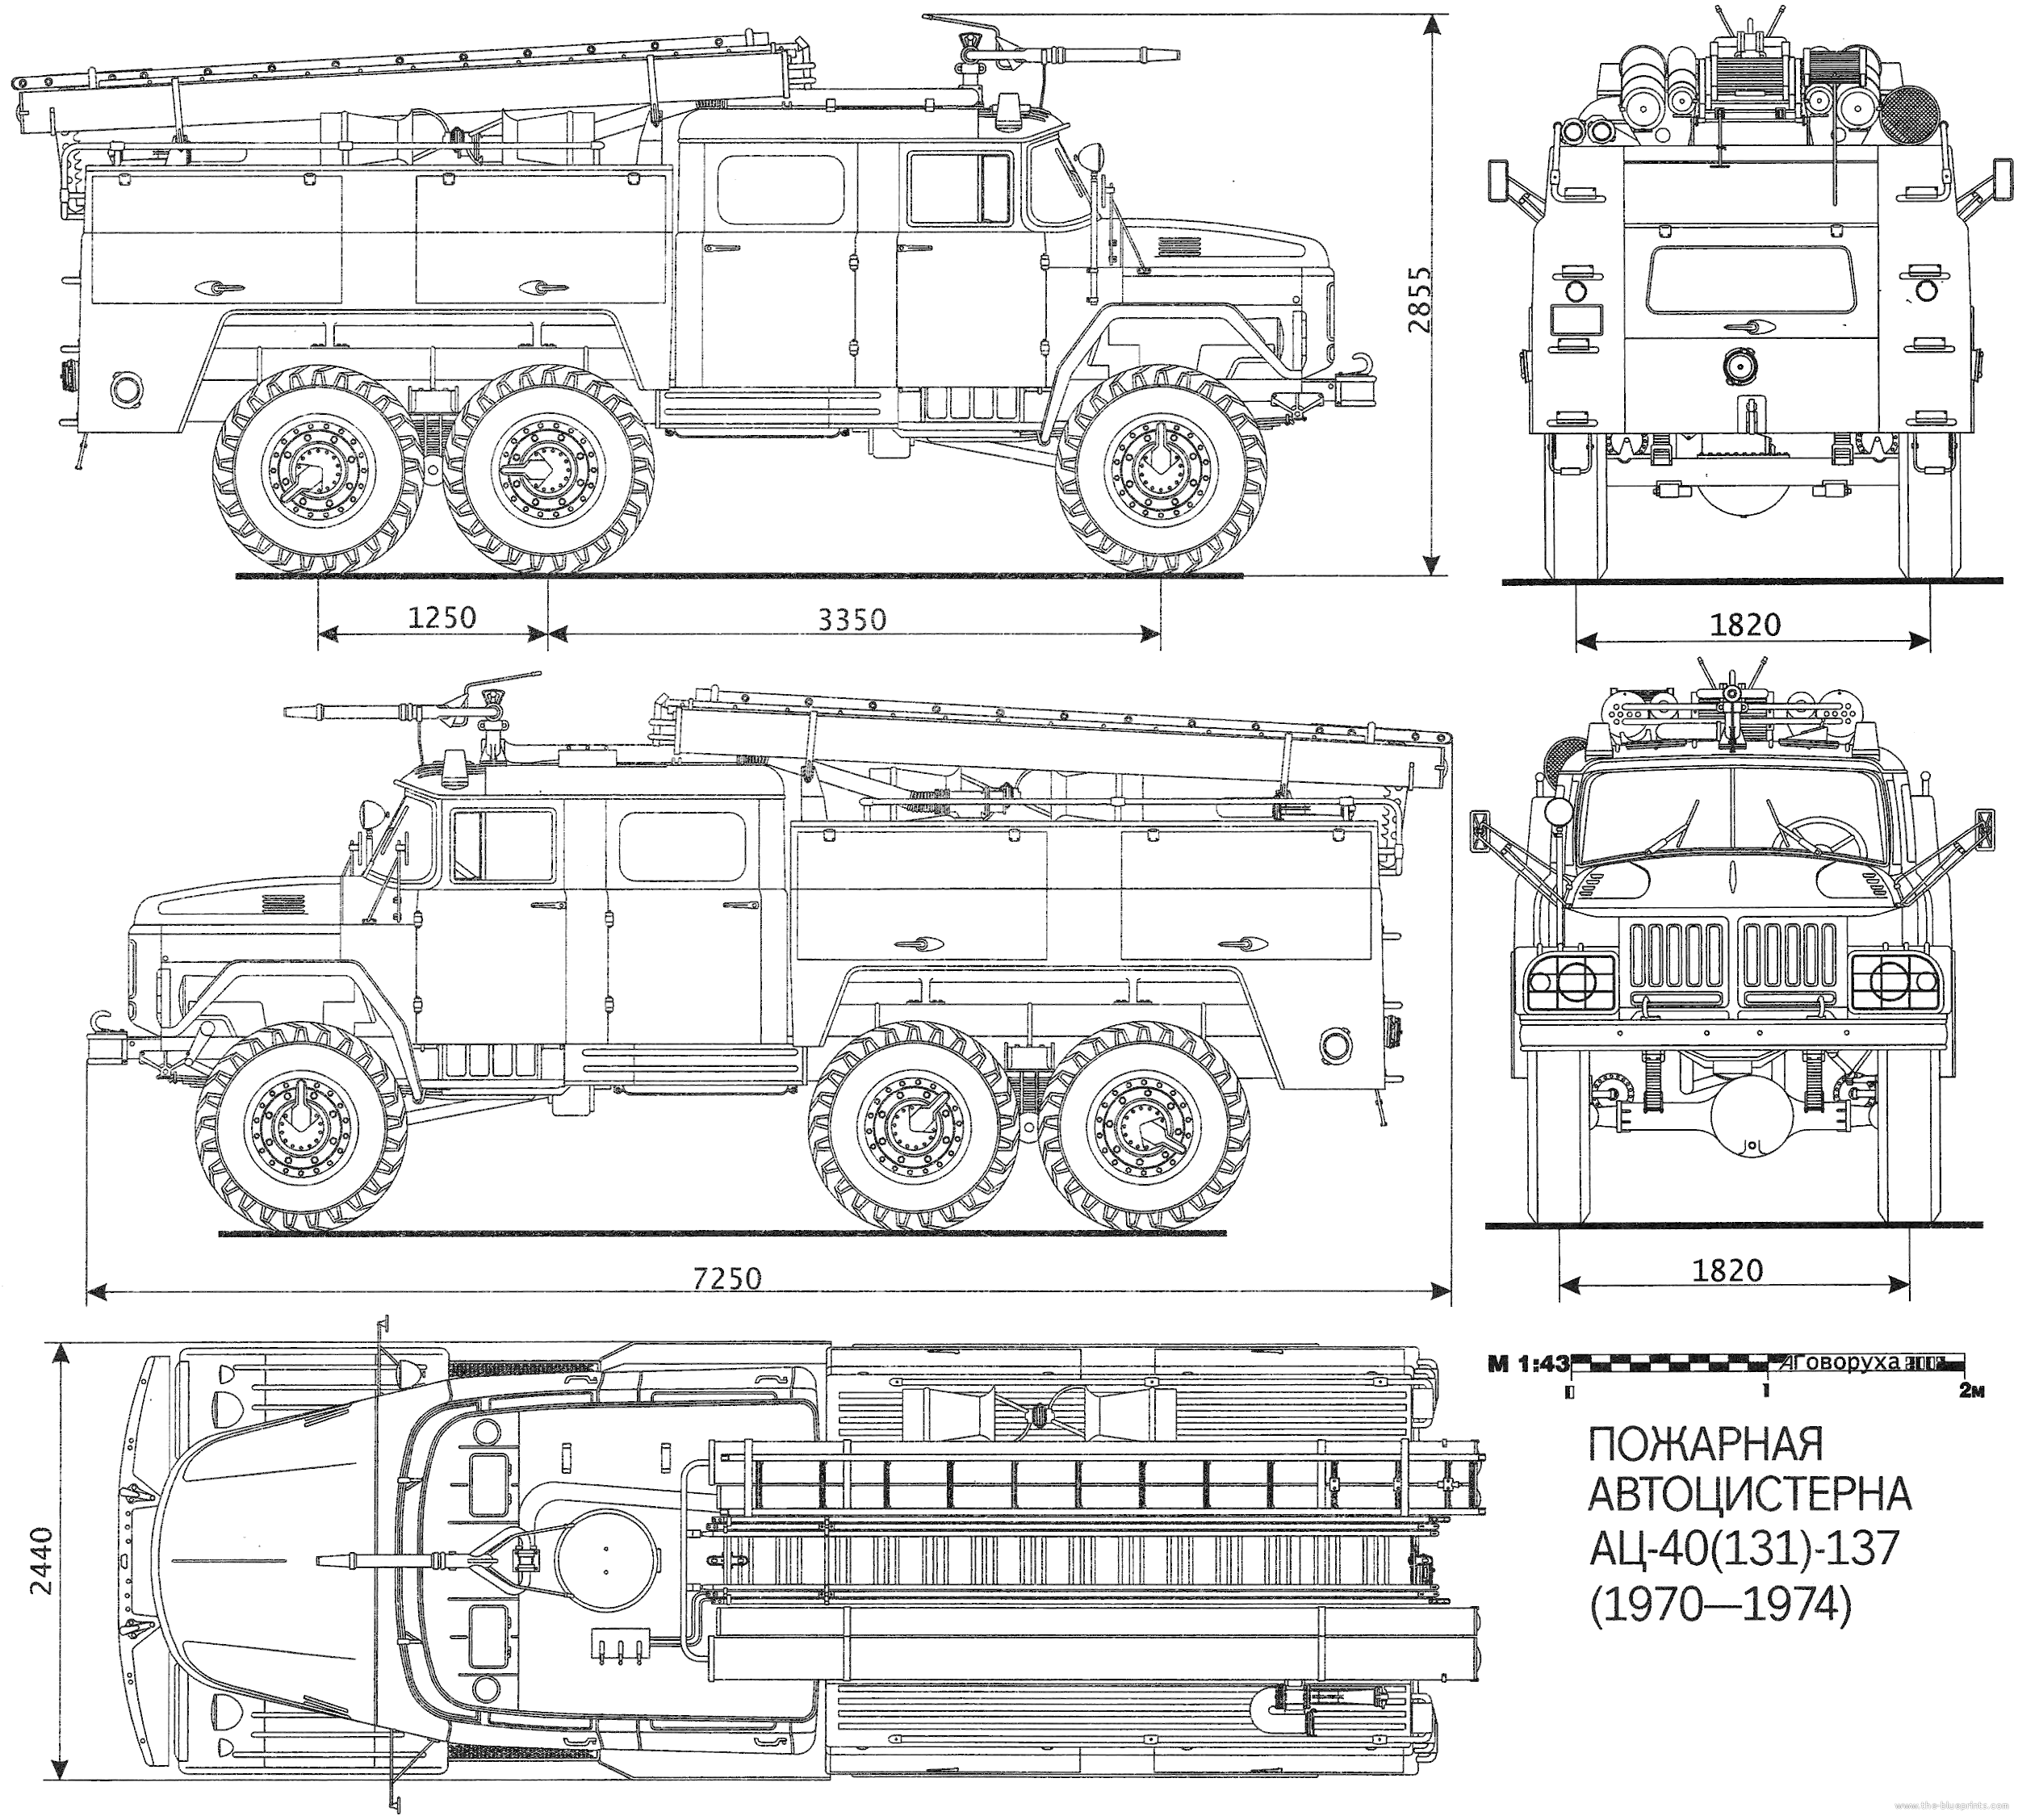 Fire Truck Vehicle Diagram Wiring Engine Zil 131 As 40 Blueprint Download Free For 3d Modeling 1948 Chevy